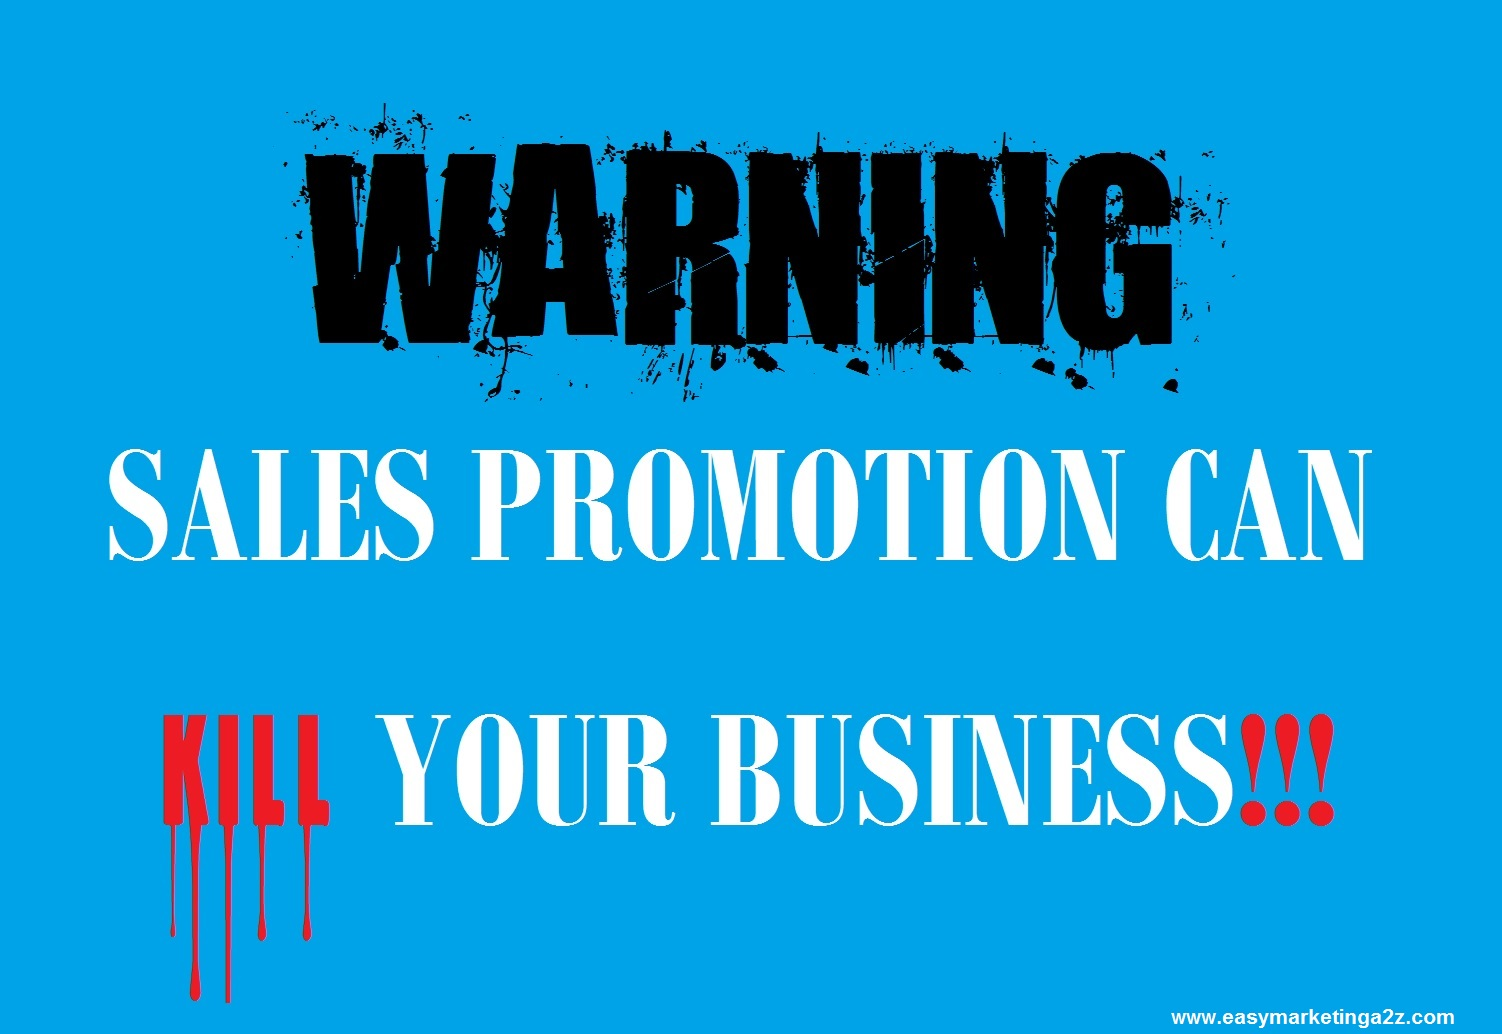 sales promotion marketing